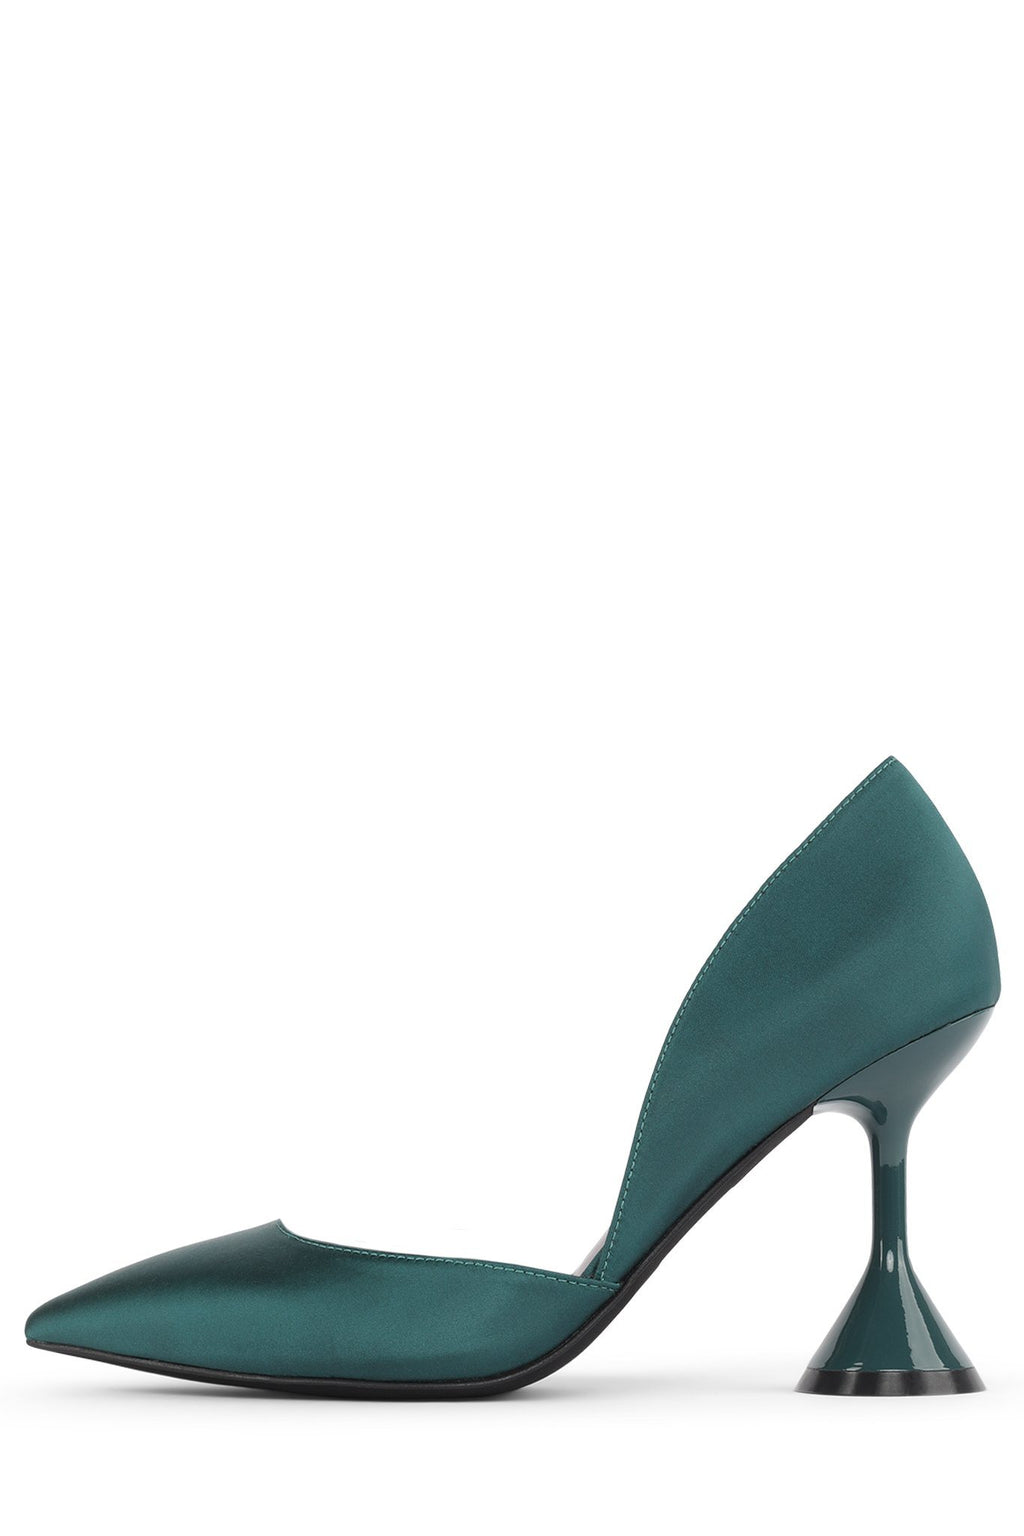 BYZANTINE Pump STRATEGY Teal Satin 6